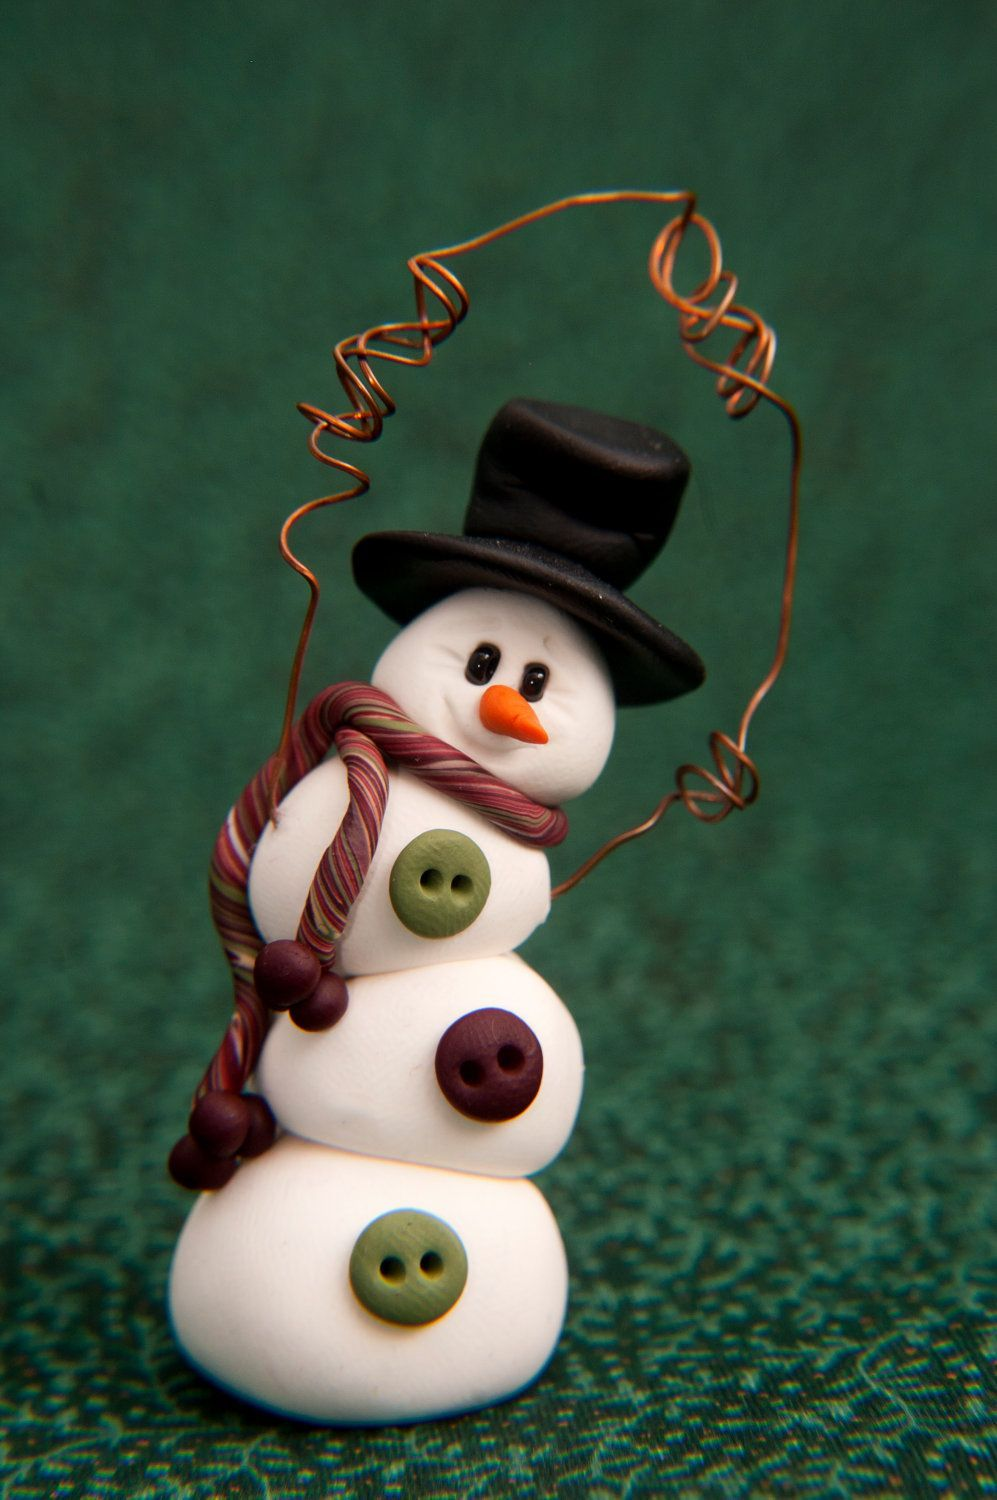 Clay Crafts For Him Topsyturvy Clay Snowman Ornament By Creative Contours Clay Christmas Decorations Christmas Clay Polymer Clay Christmas